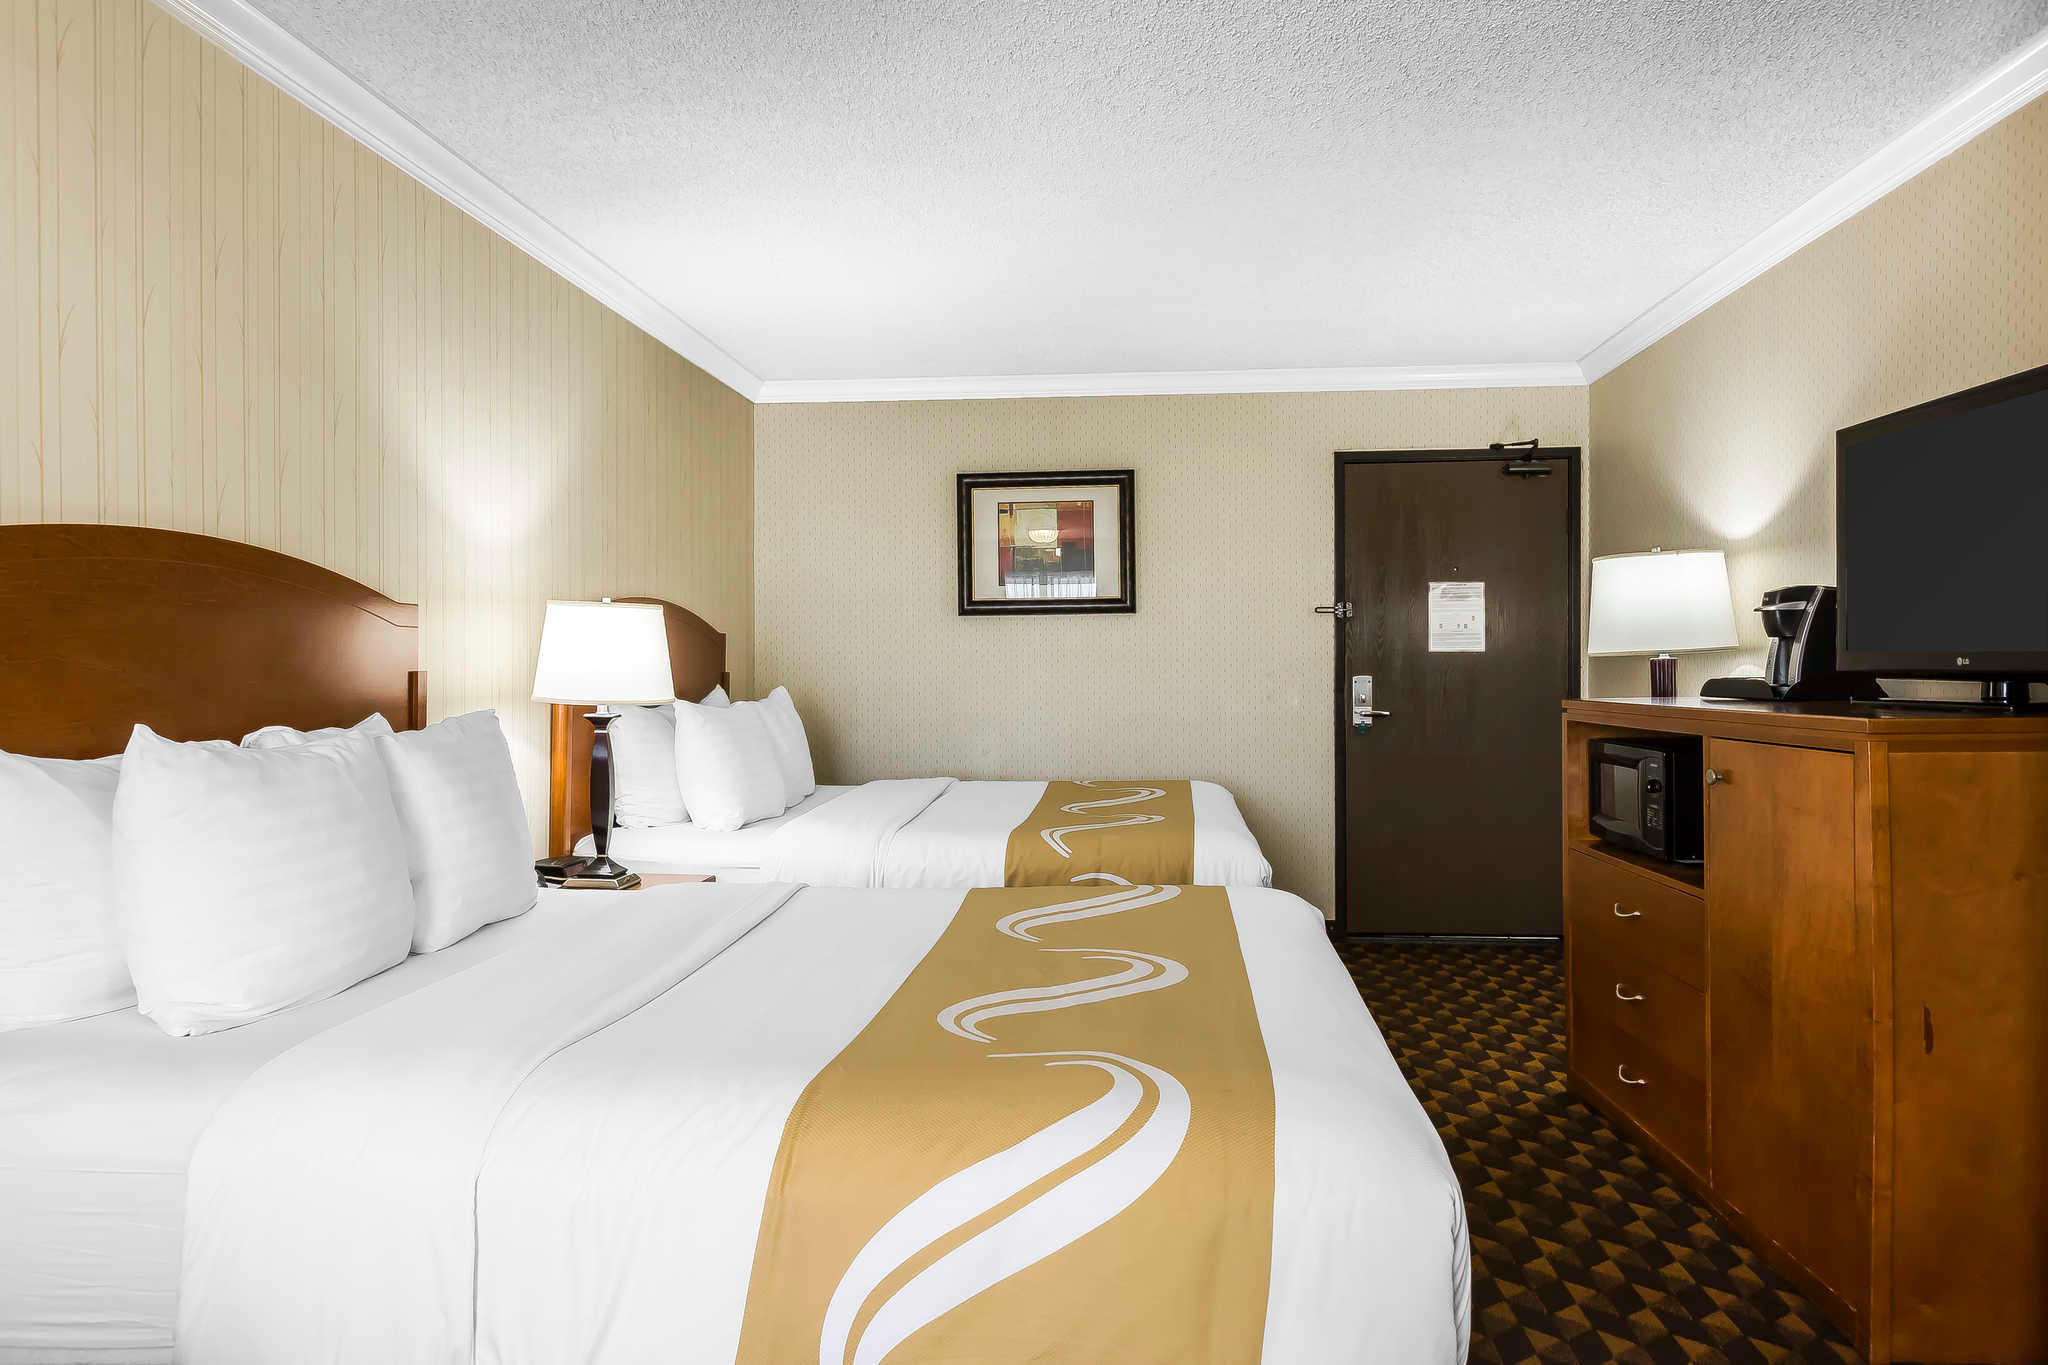 Quality Inn & Suites Los Angeles Airport - LAX image 7